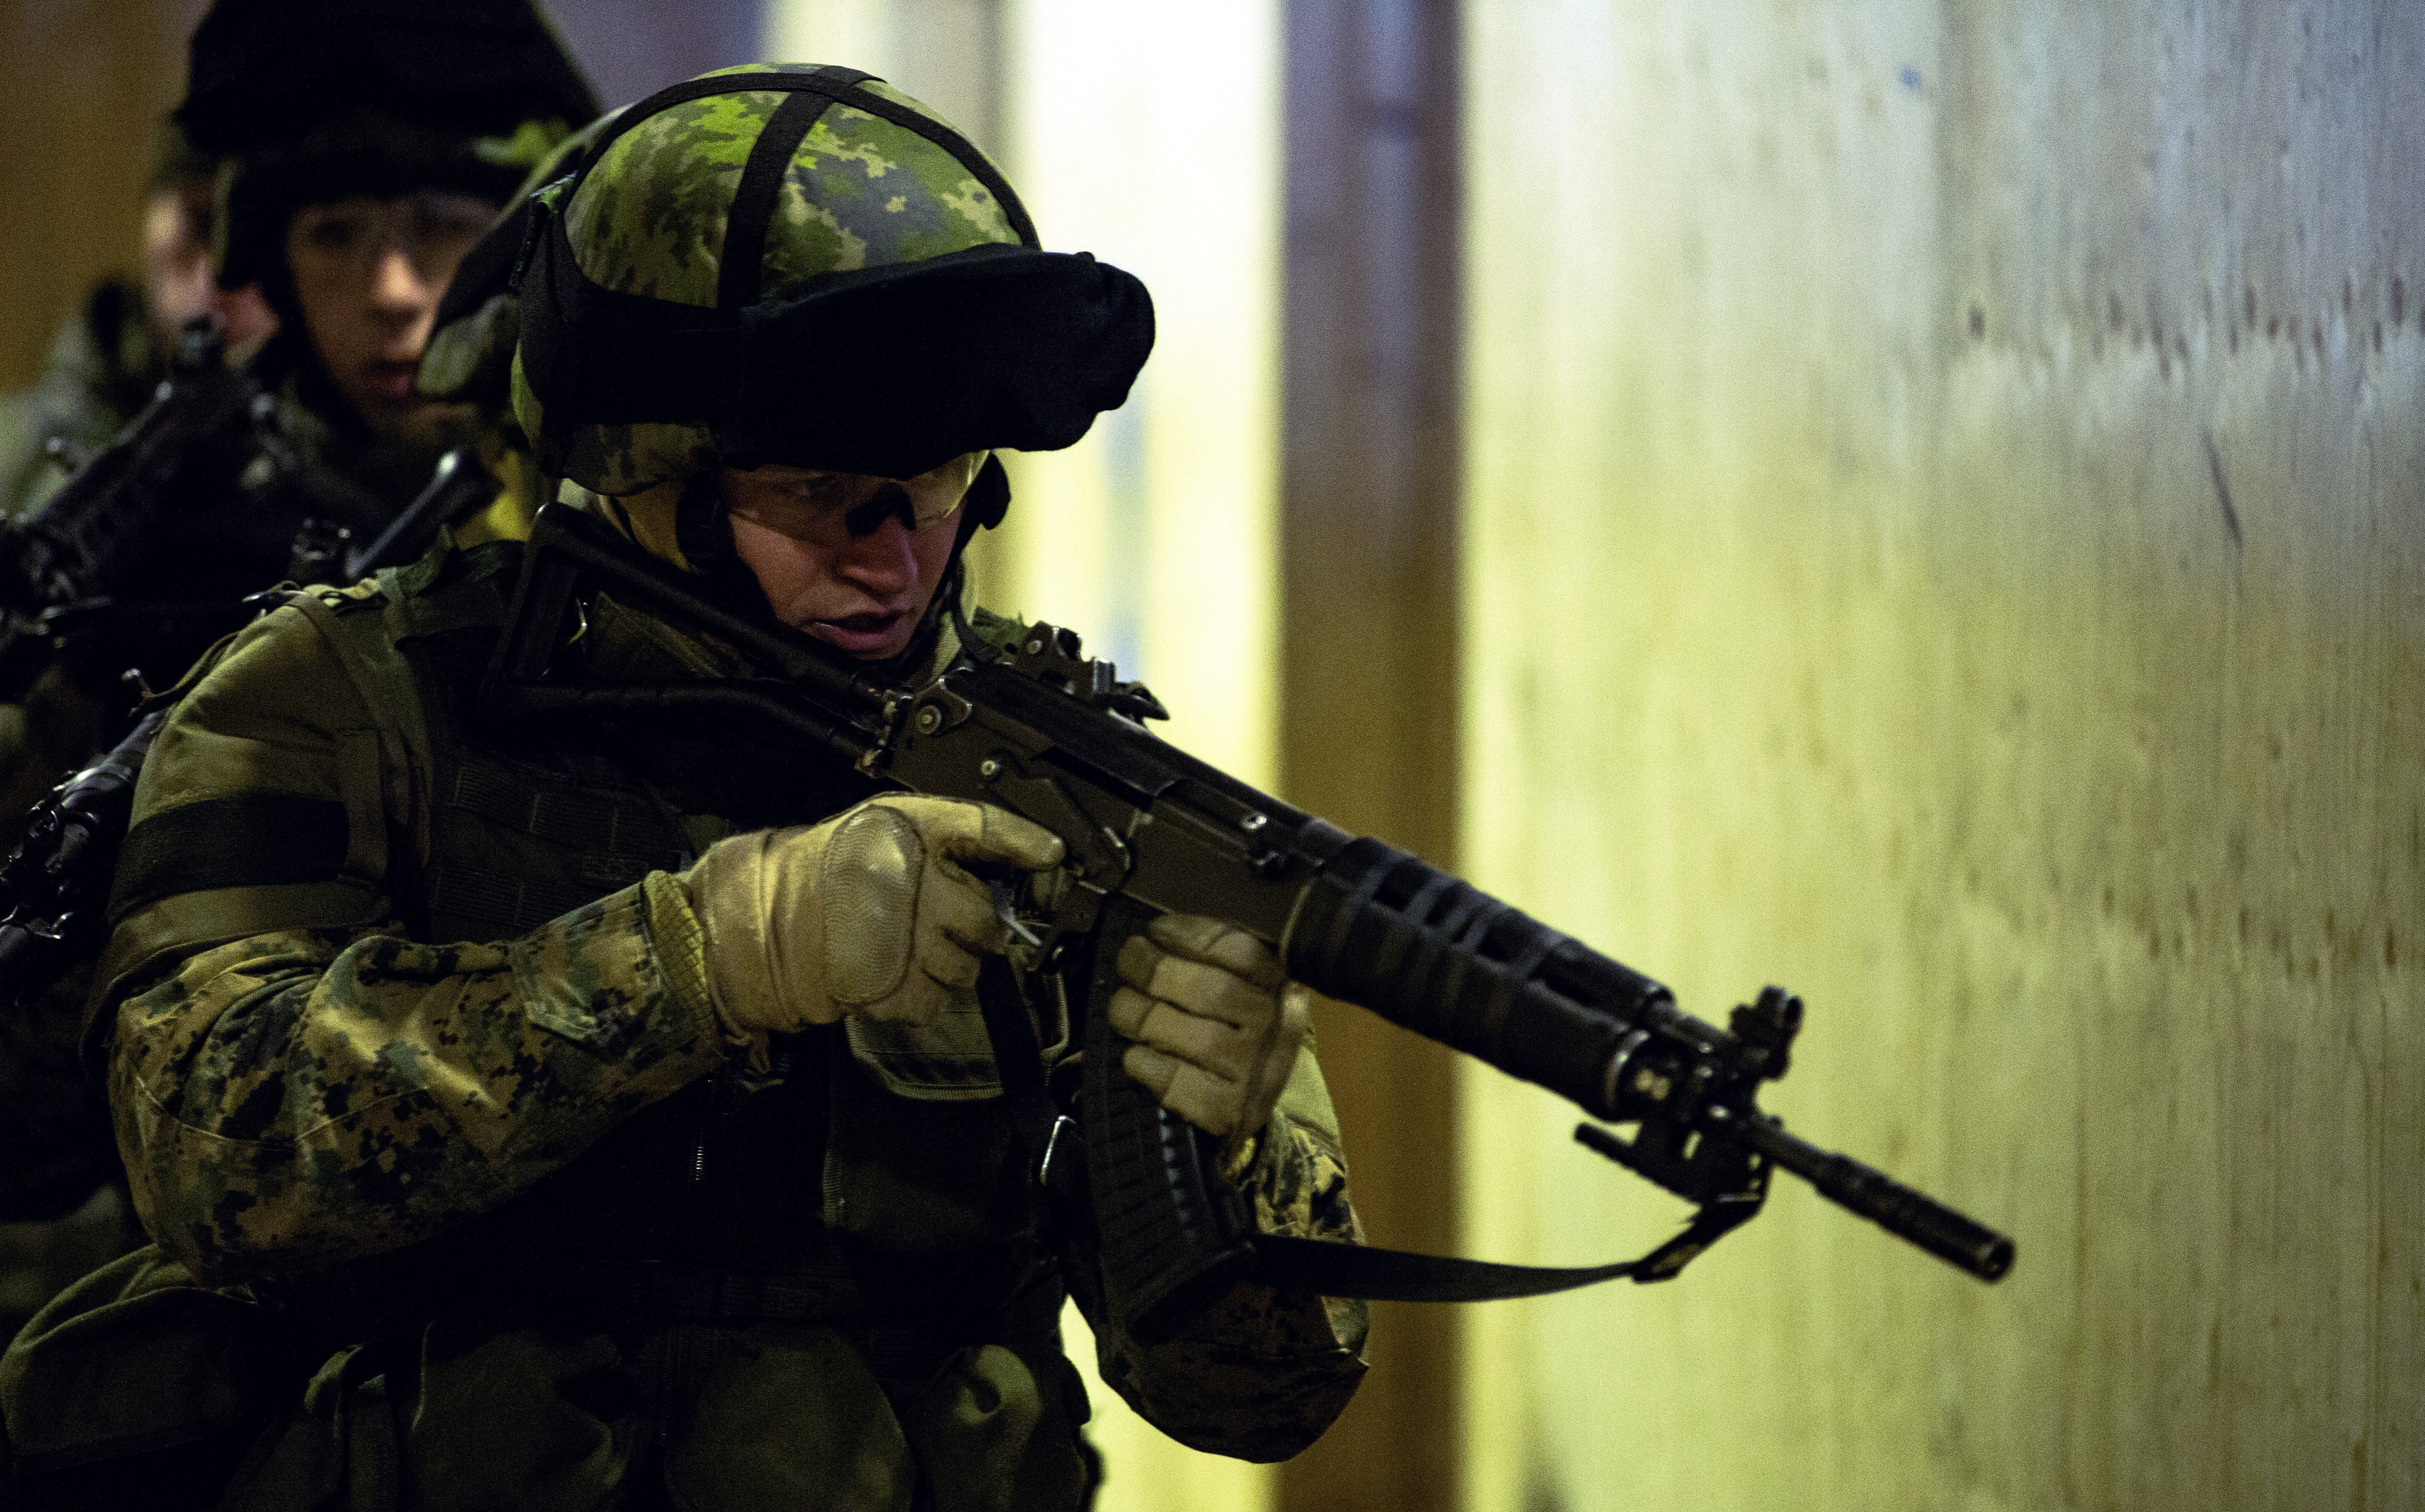 A marine with the RK 95 TP assault rifle